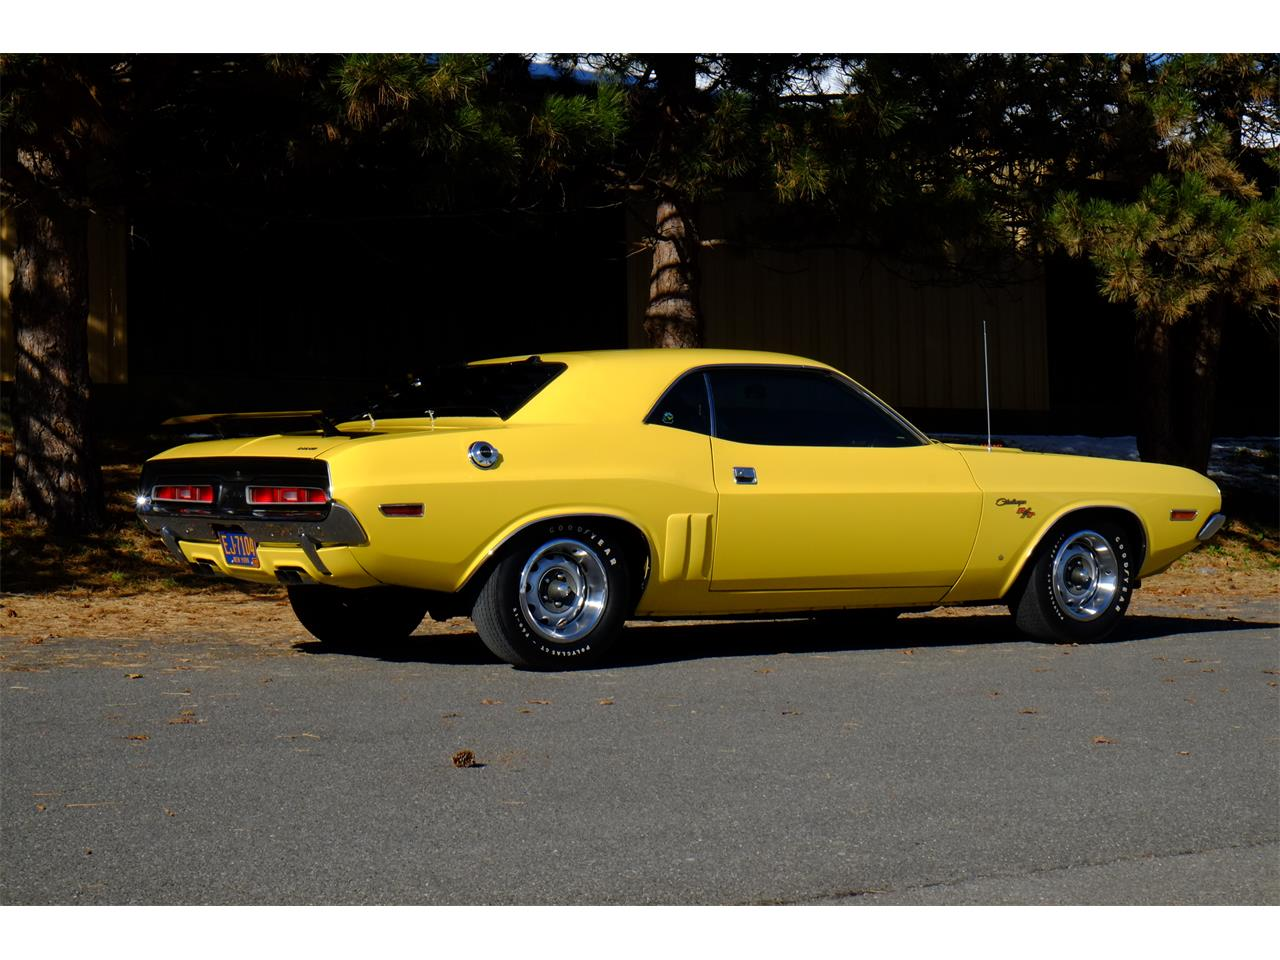 Large Picture of 1971 Challenger R/T 426 Hemi - $325,000.00 - JY6E